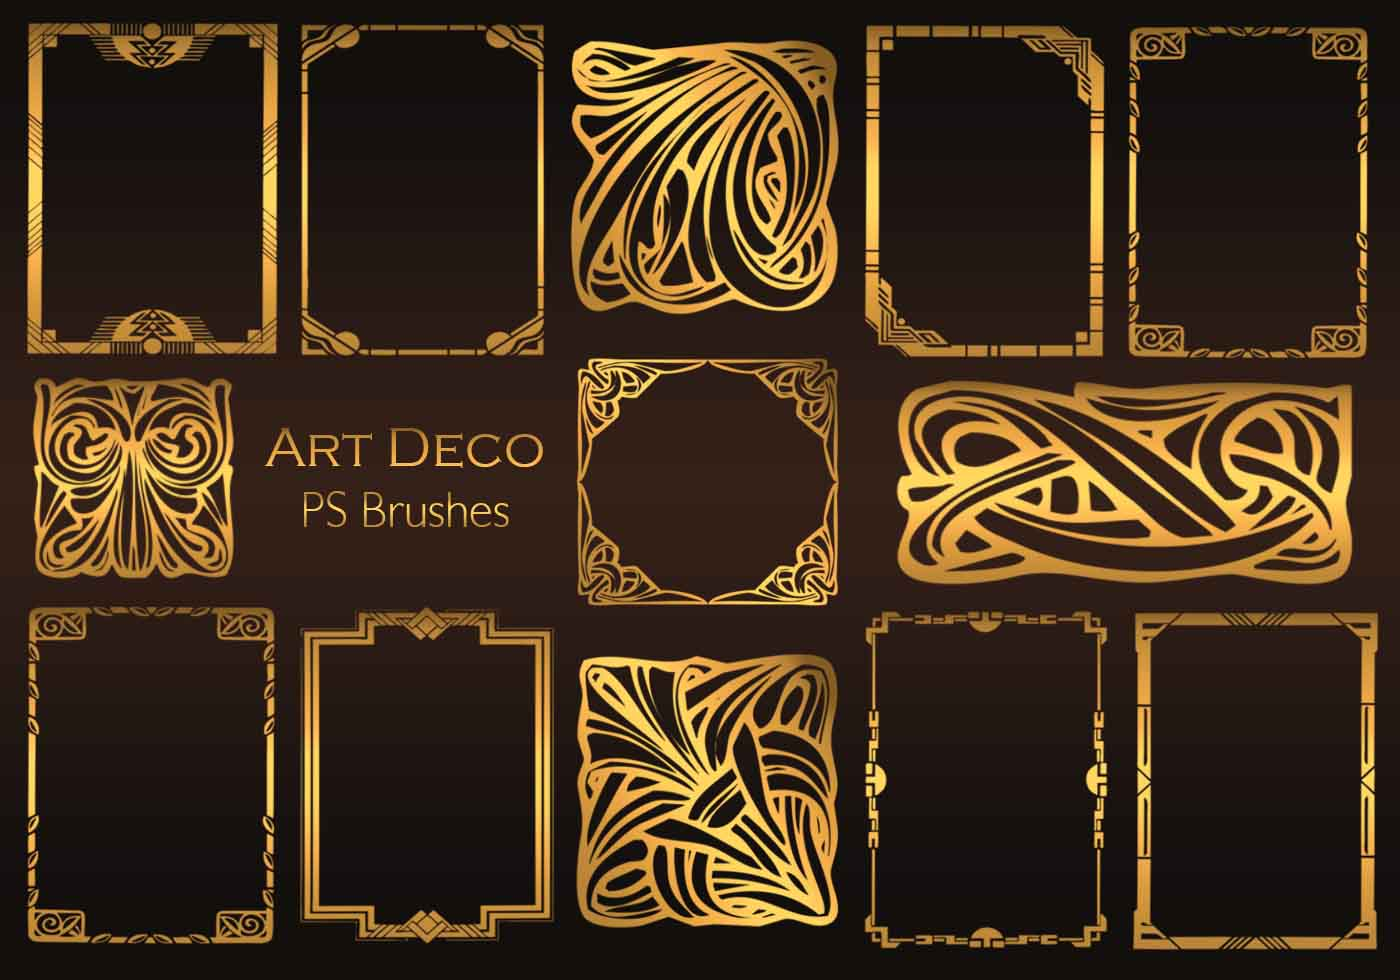 20 art deco ps vol 1 free photoshop brushes at brusheezy. Black Bedroom Furniture Sets. Home Design Ideas